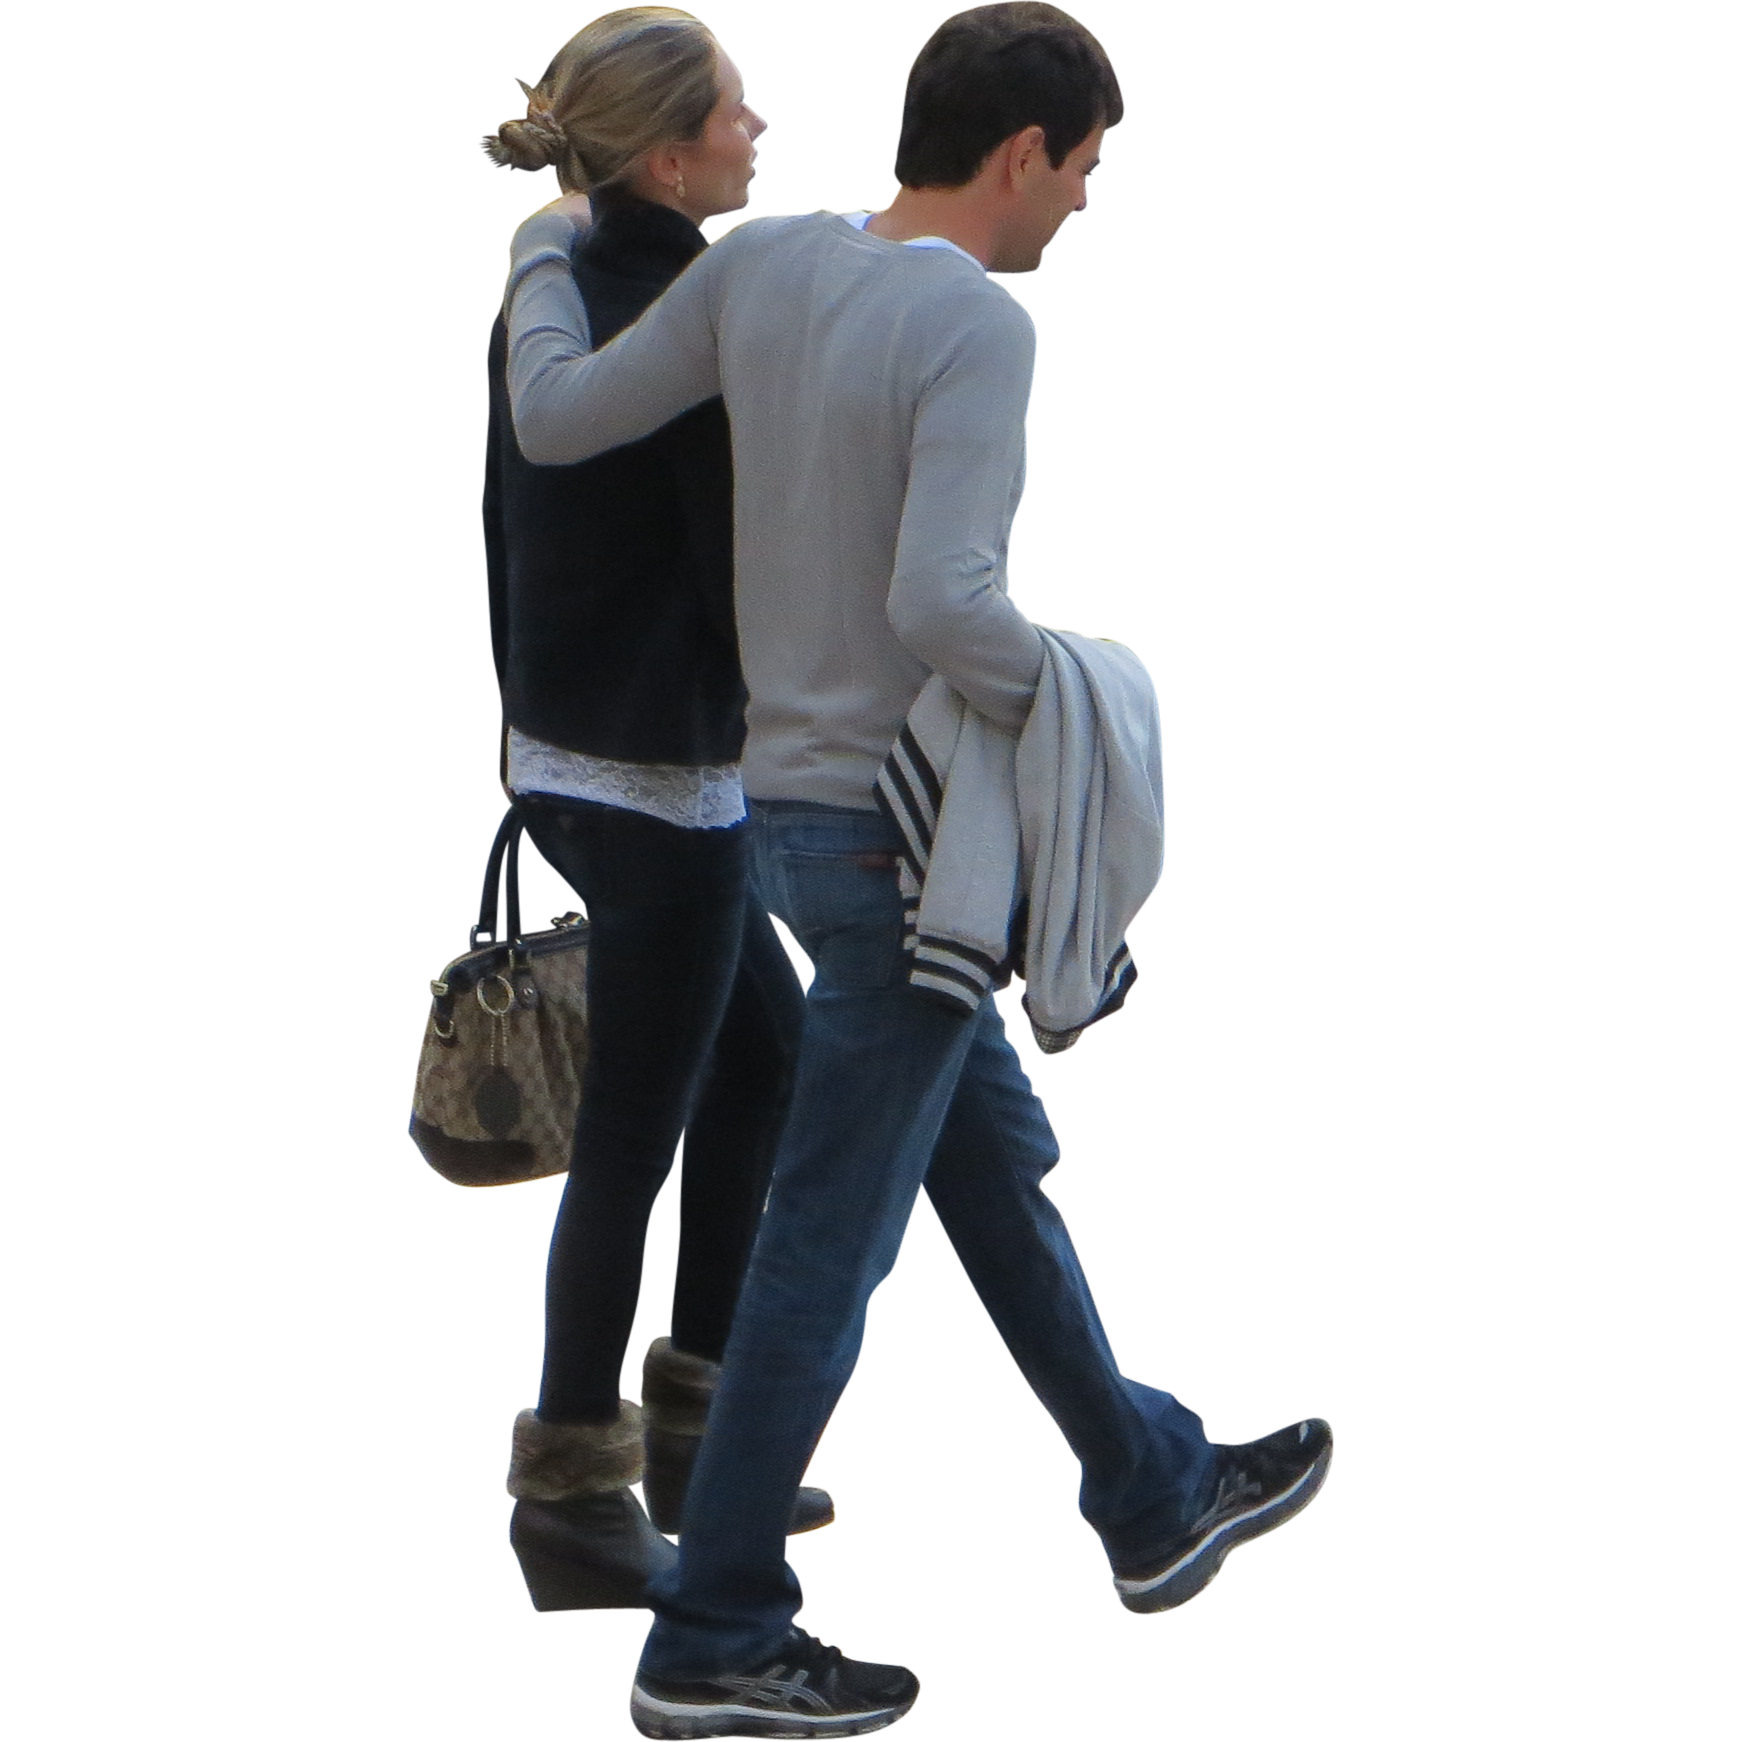 walking people png - Google Search - People PNG